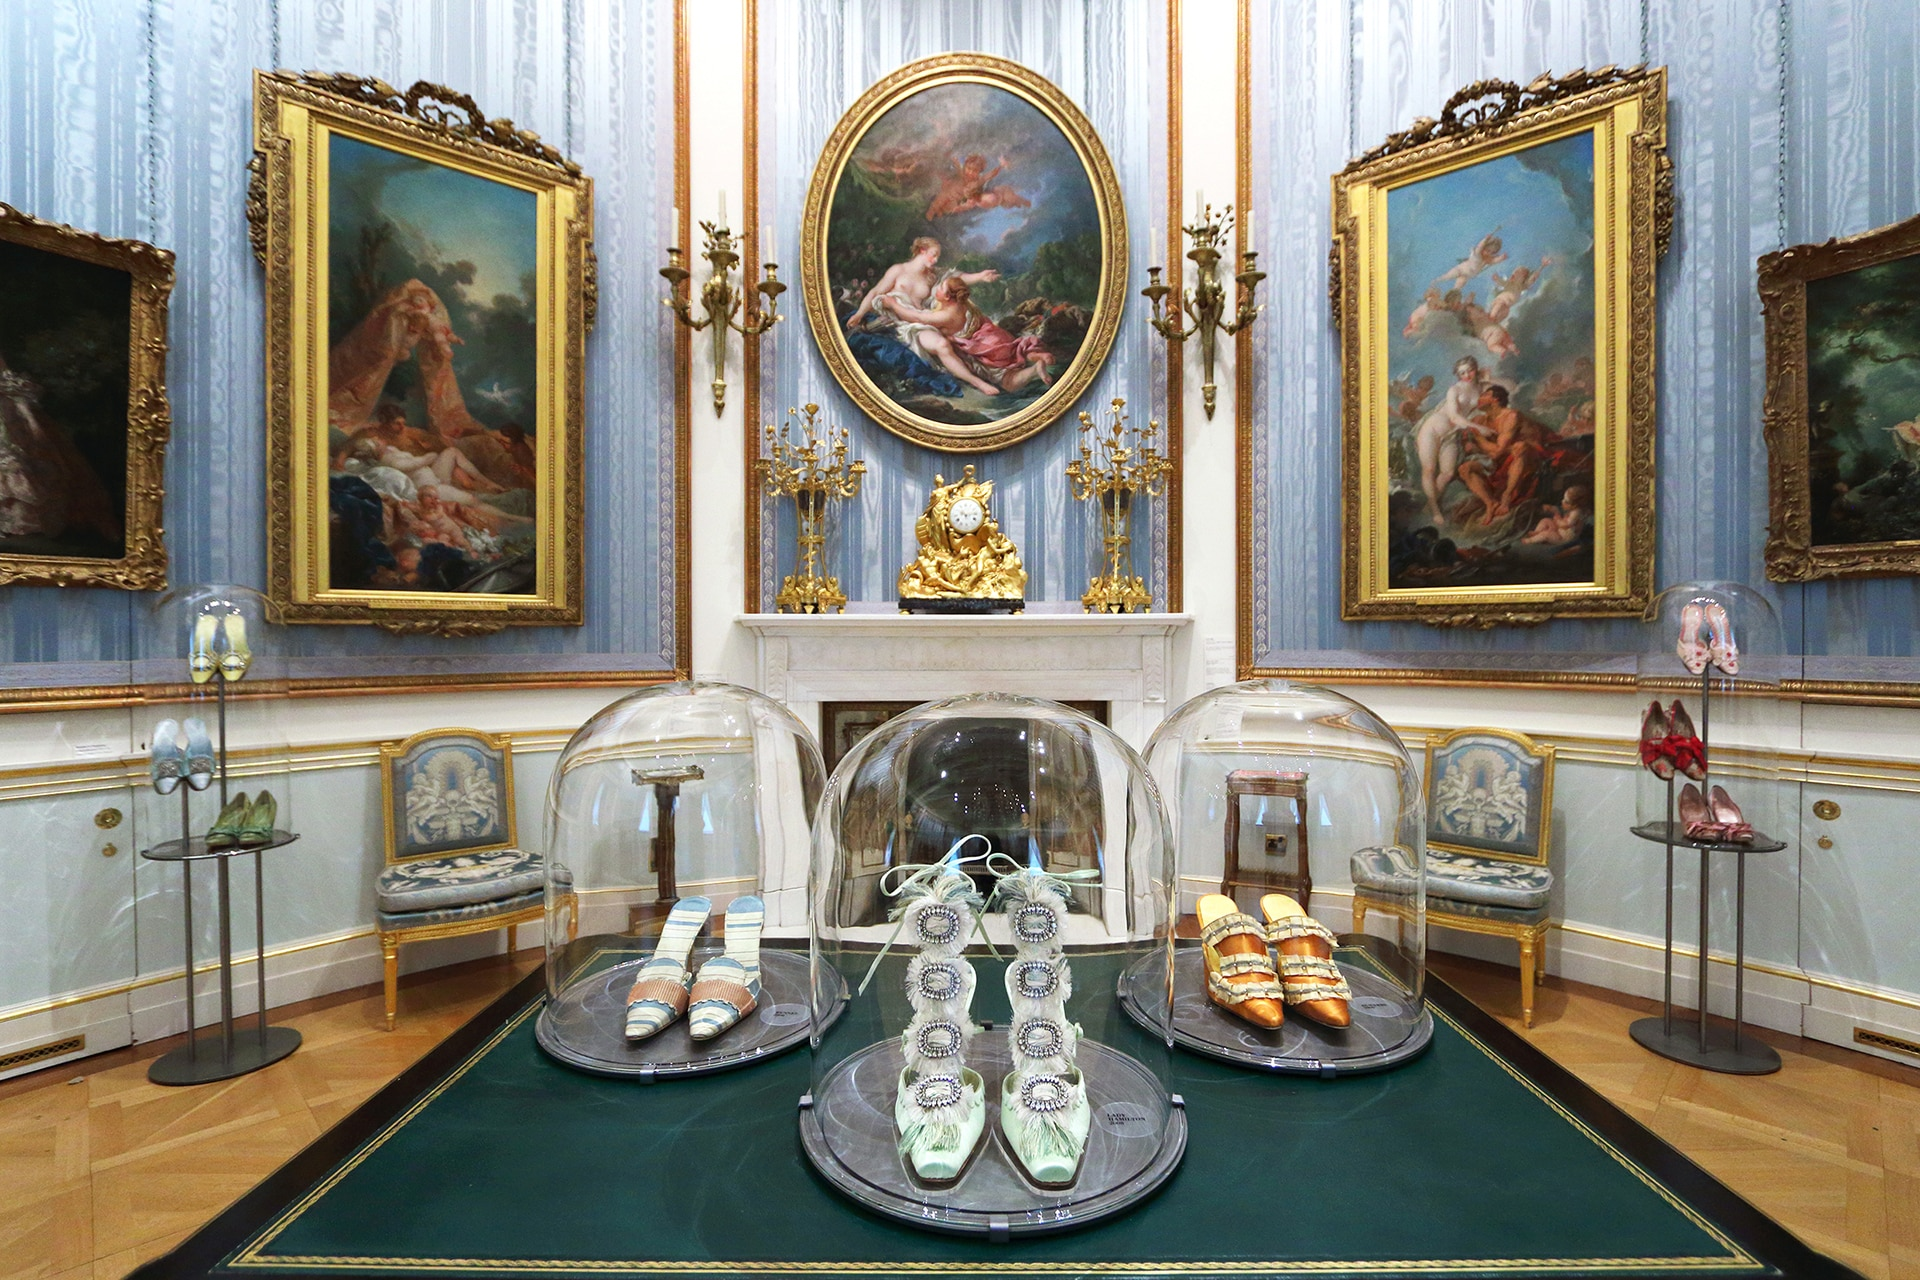 Inside Manolo Blahnik's new exhibition at the Wallace Collection